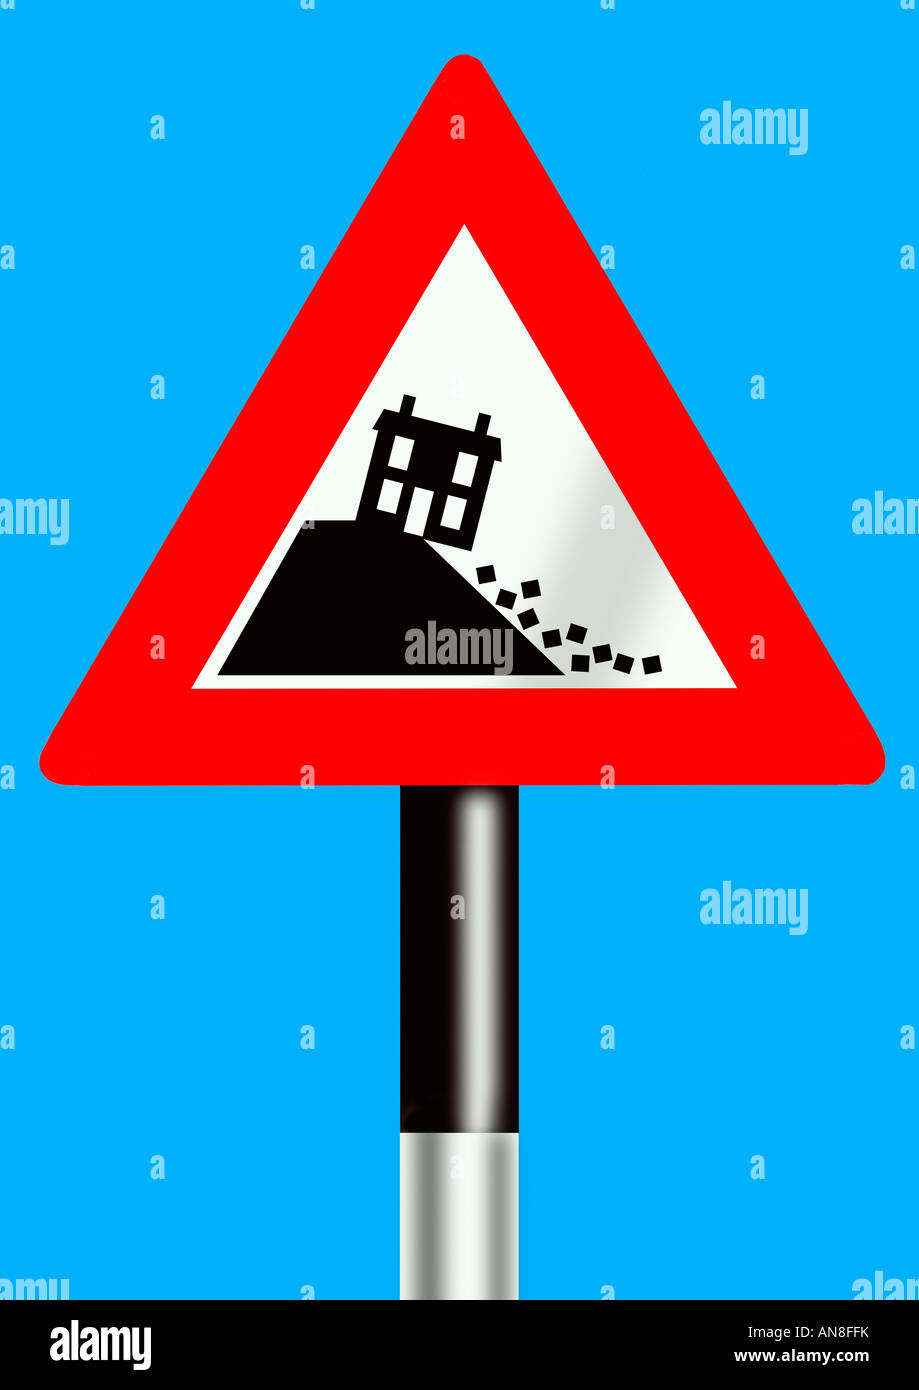 Warning Sign Of House Prices Crash Stock Photo 15446886 Alamy